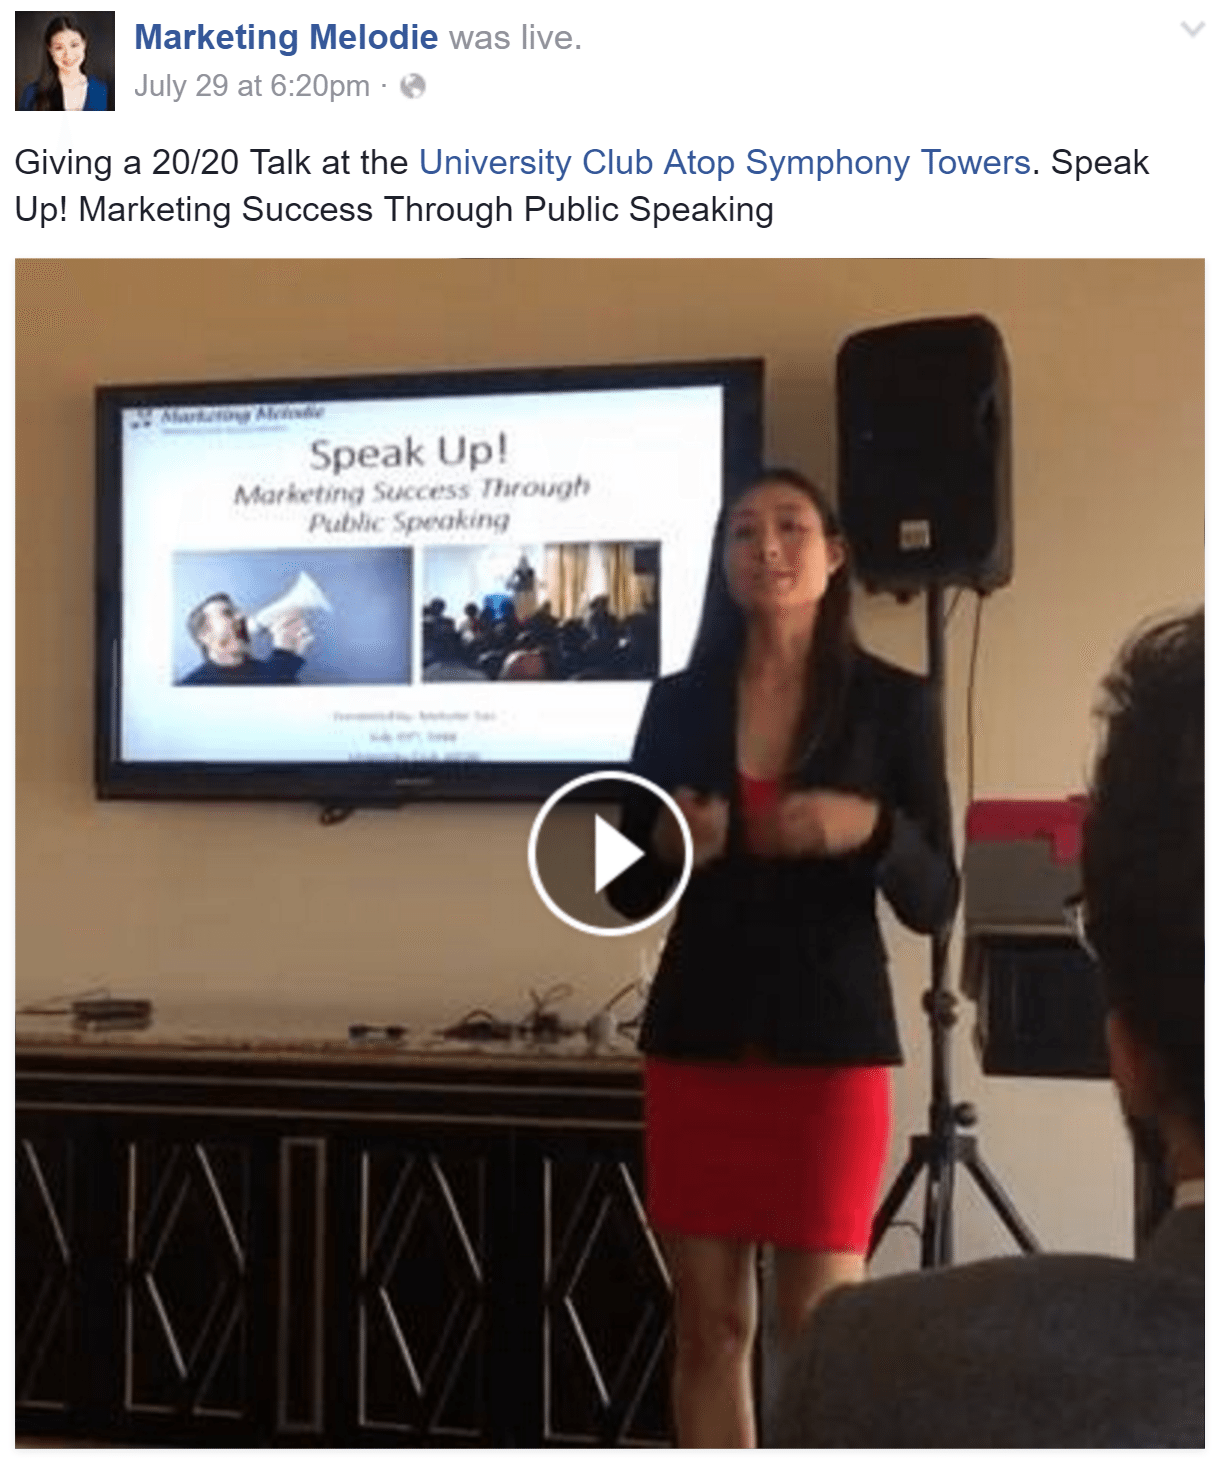 Marketing Melodie Speaking at 20 20 University Club